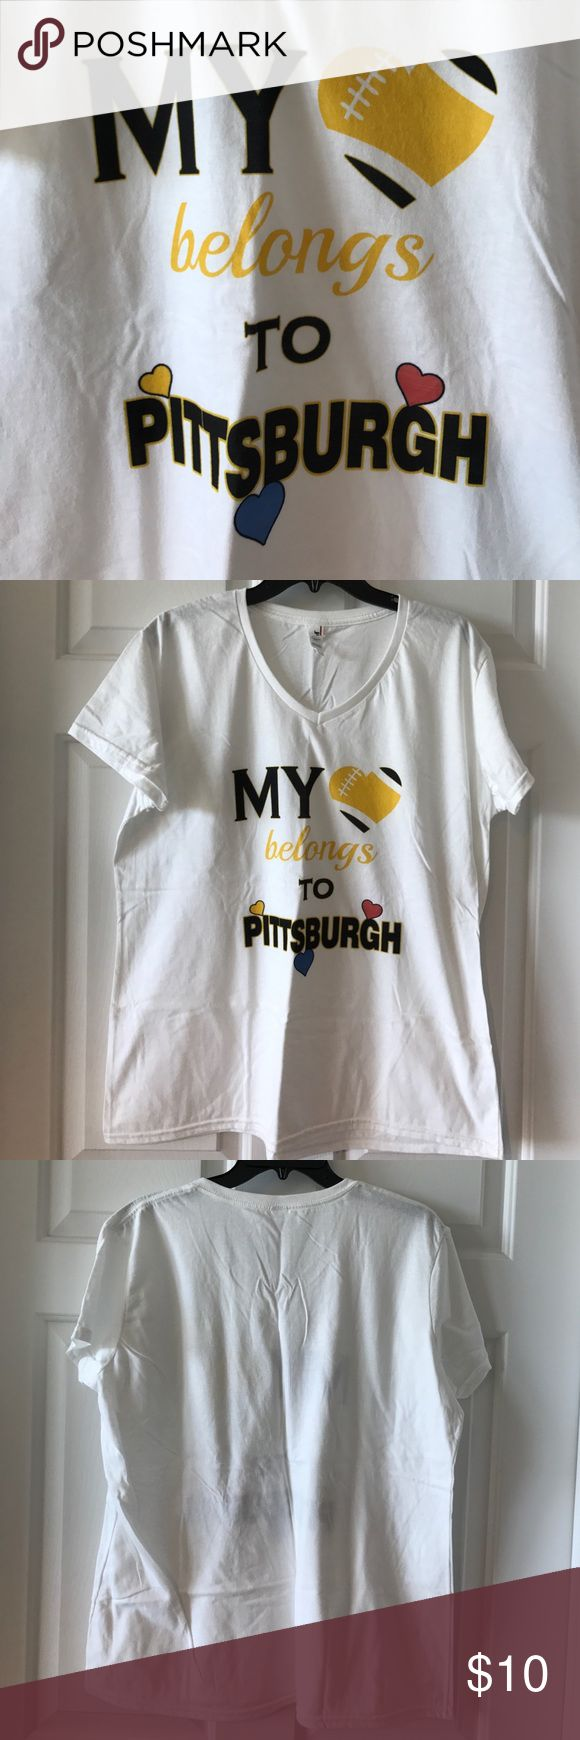 Pittsburgh T shirt size XL My heart belongs to Pittsburgh T shirt with cap/shirt sleeves. Size XL. Never worn, tags have been removed. Tops Tees - Short Sleeve